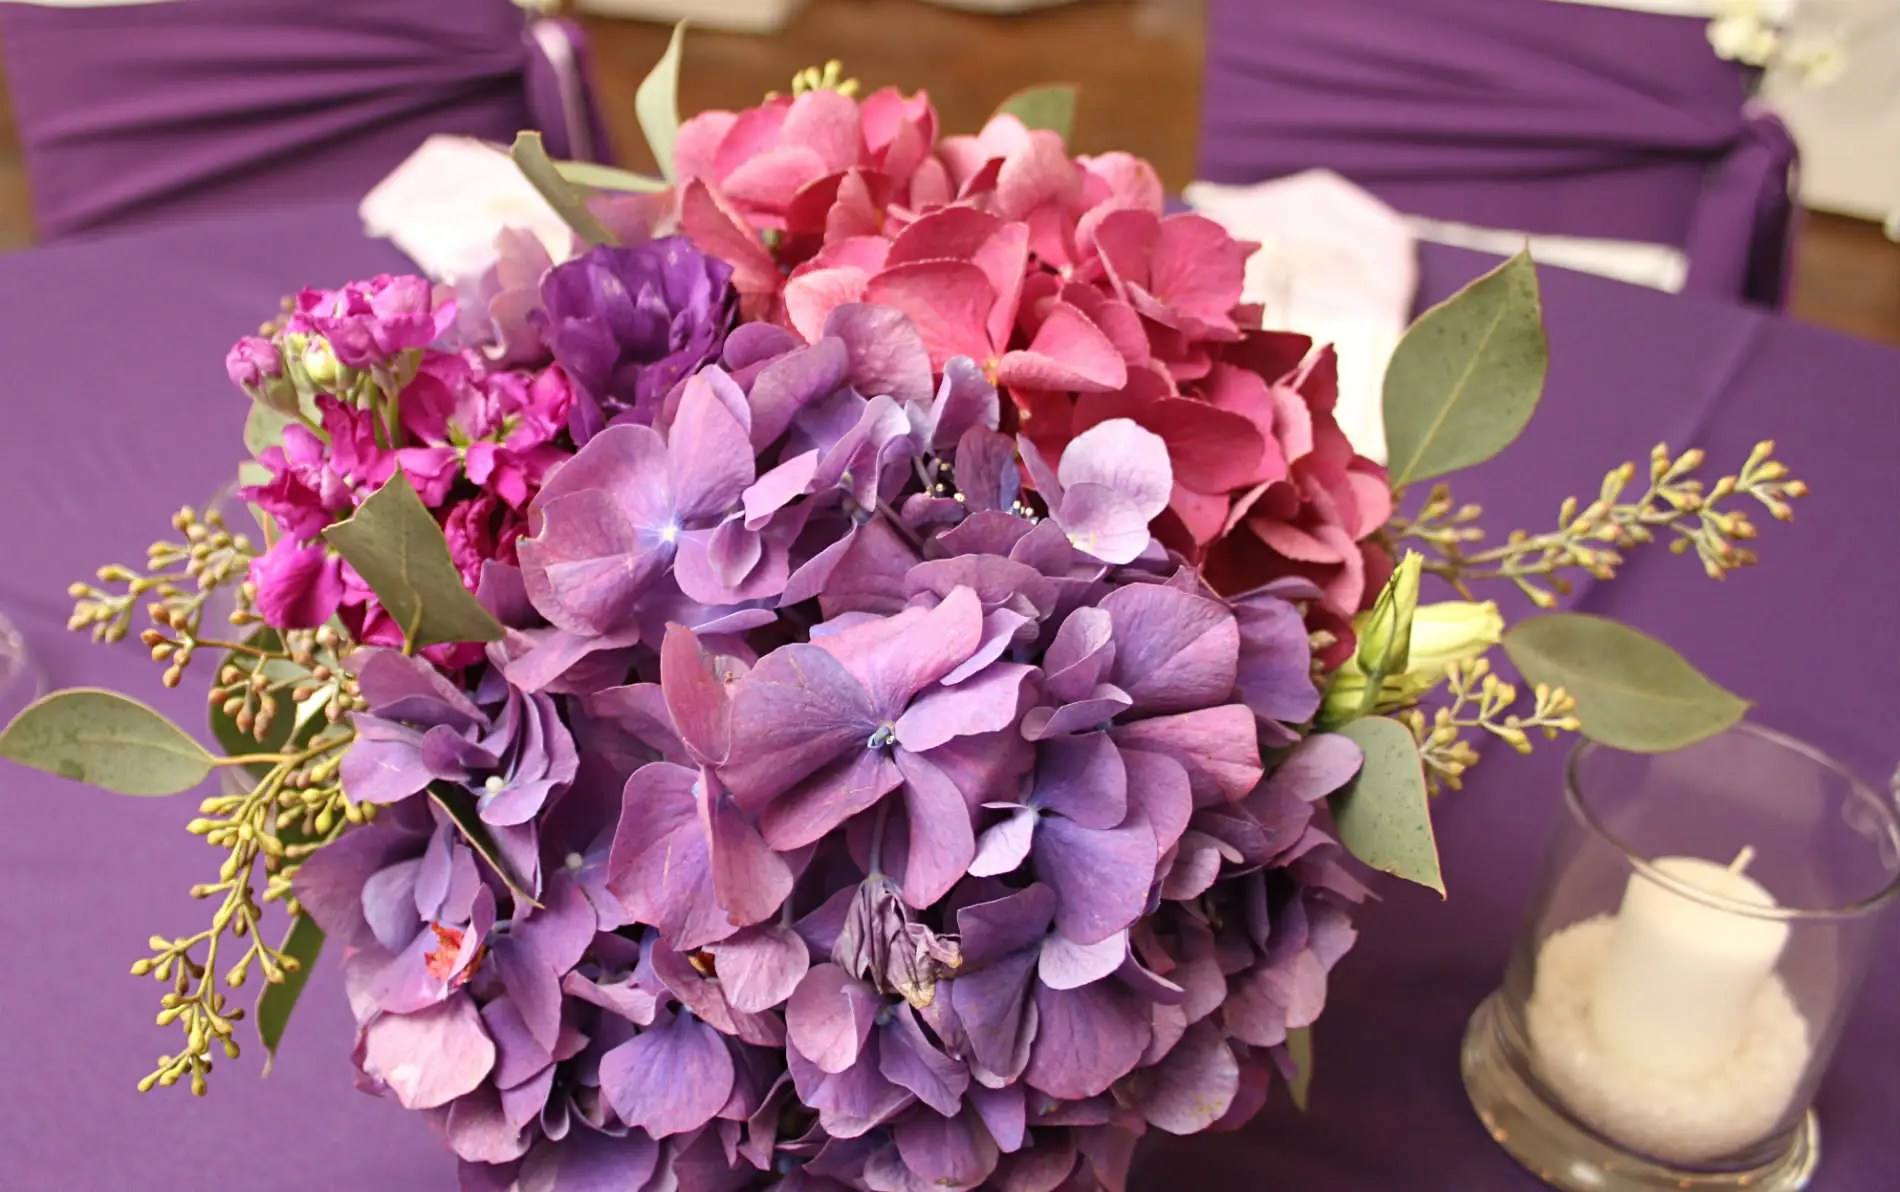 wedding chair covers reddit bungie cord elopement location in northern kentucky near cincinnati ohio arrangement of purple and pink hydrangeas on a table white covered chairs with